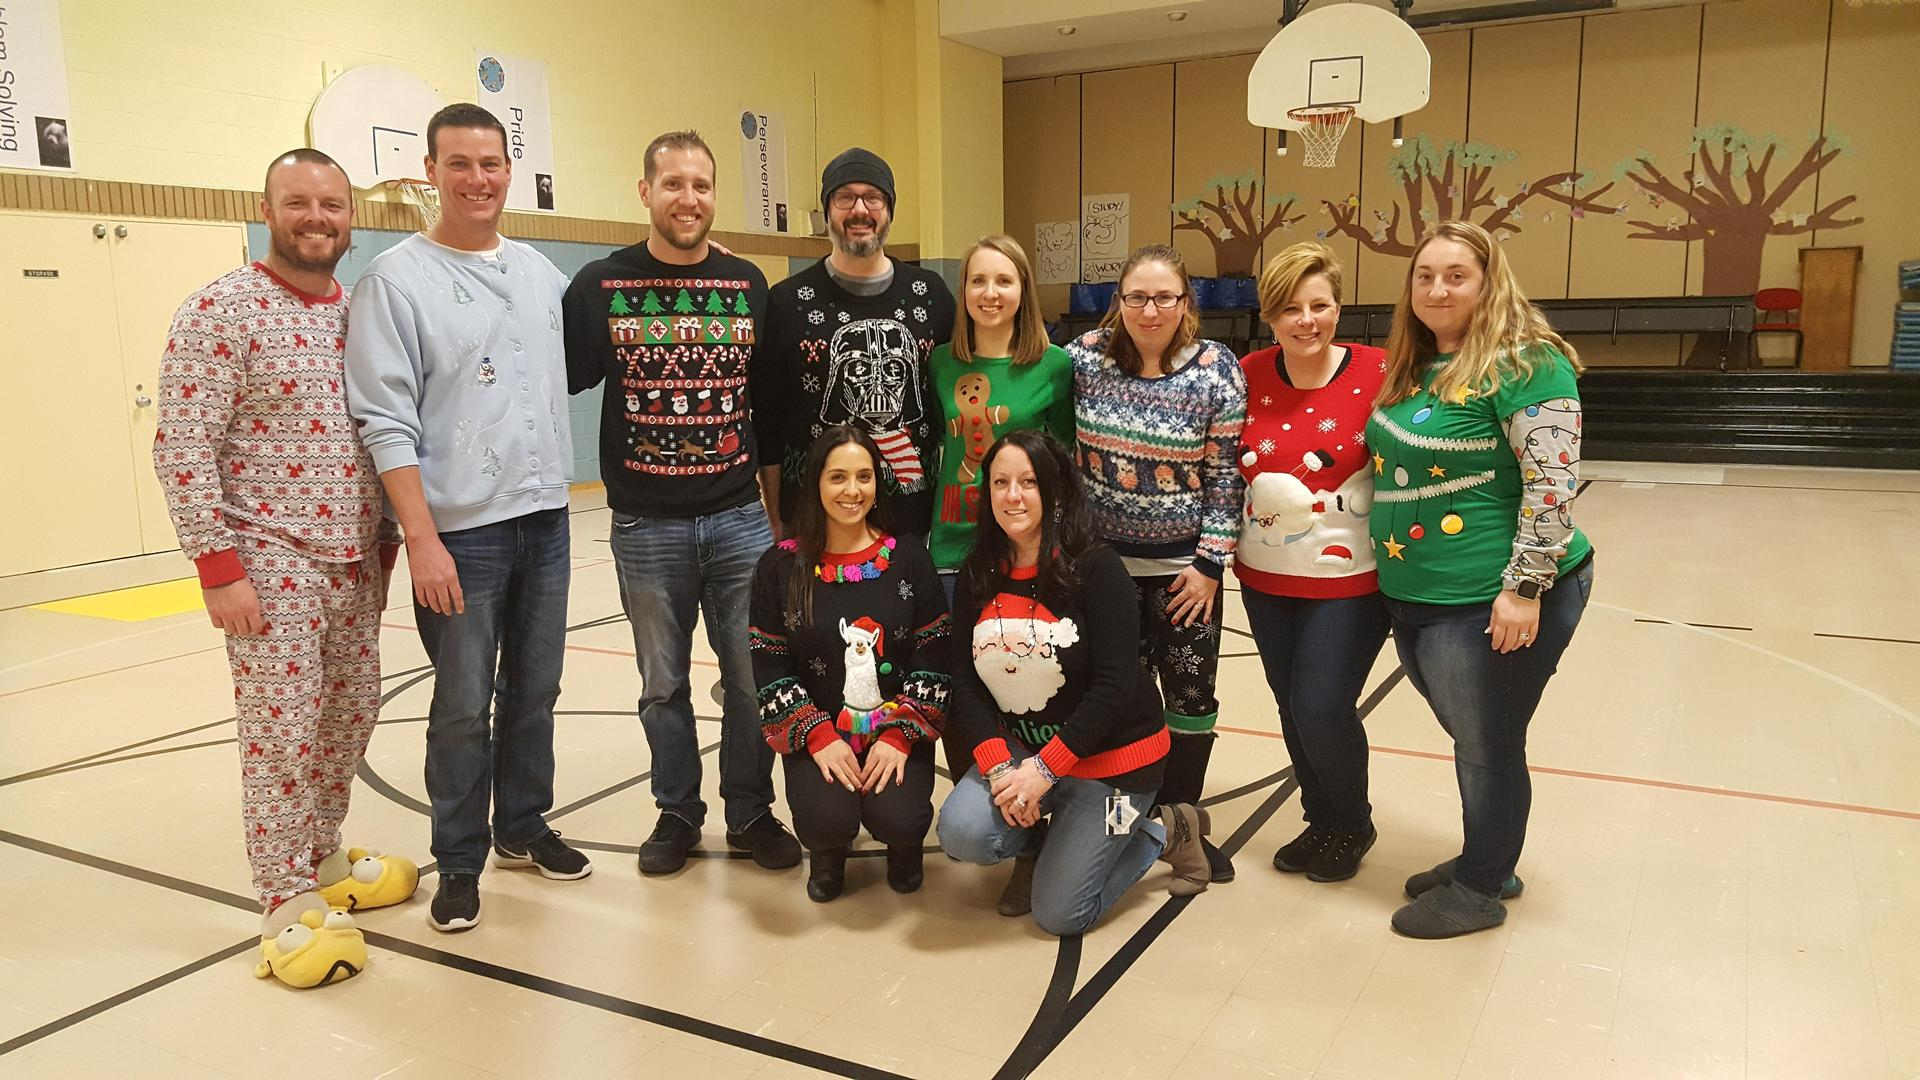 staff in Christmas sweaters